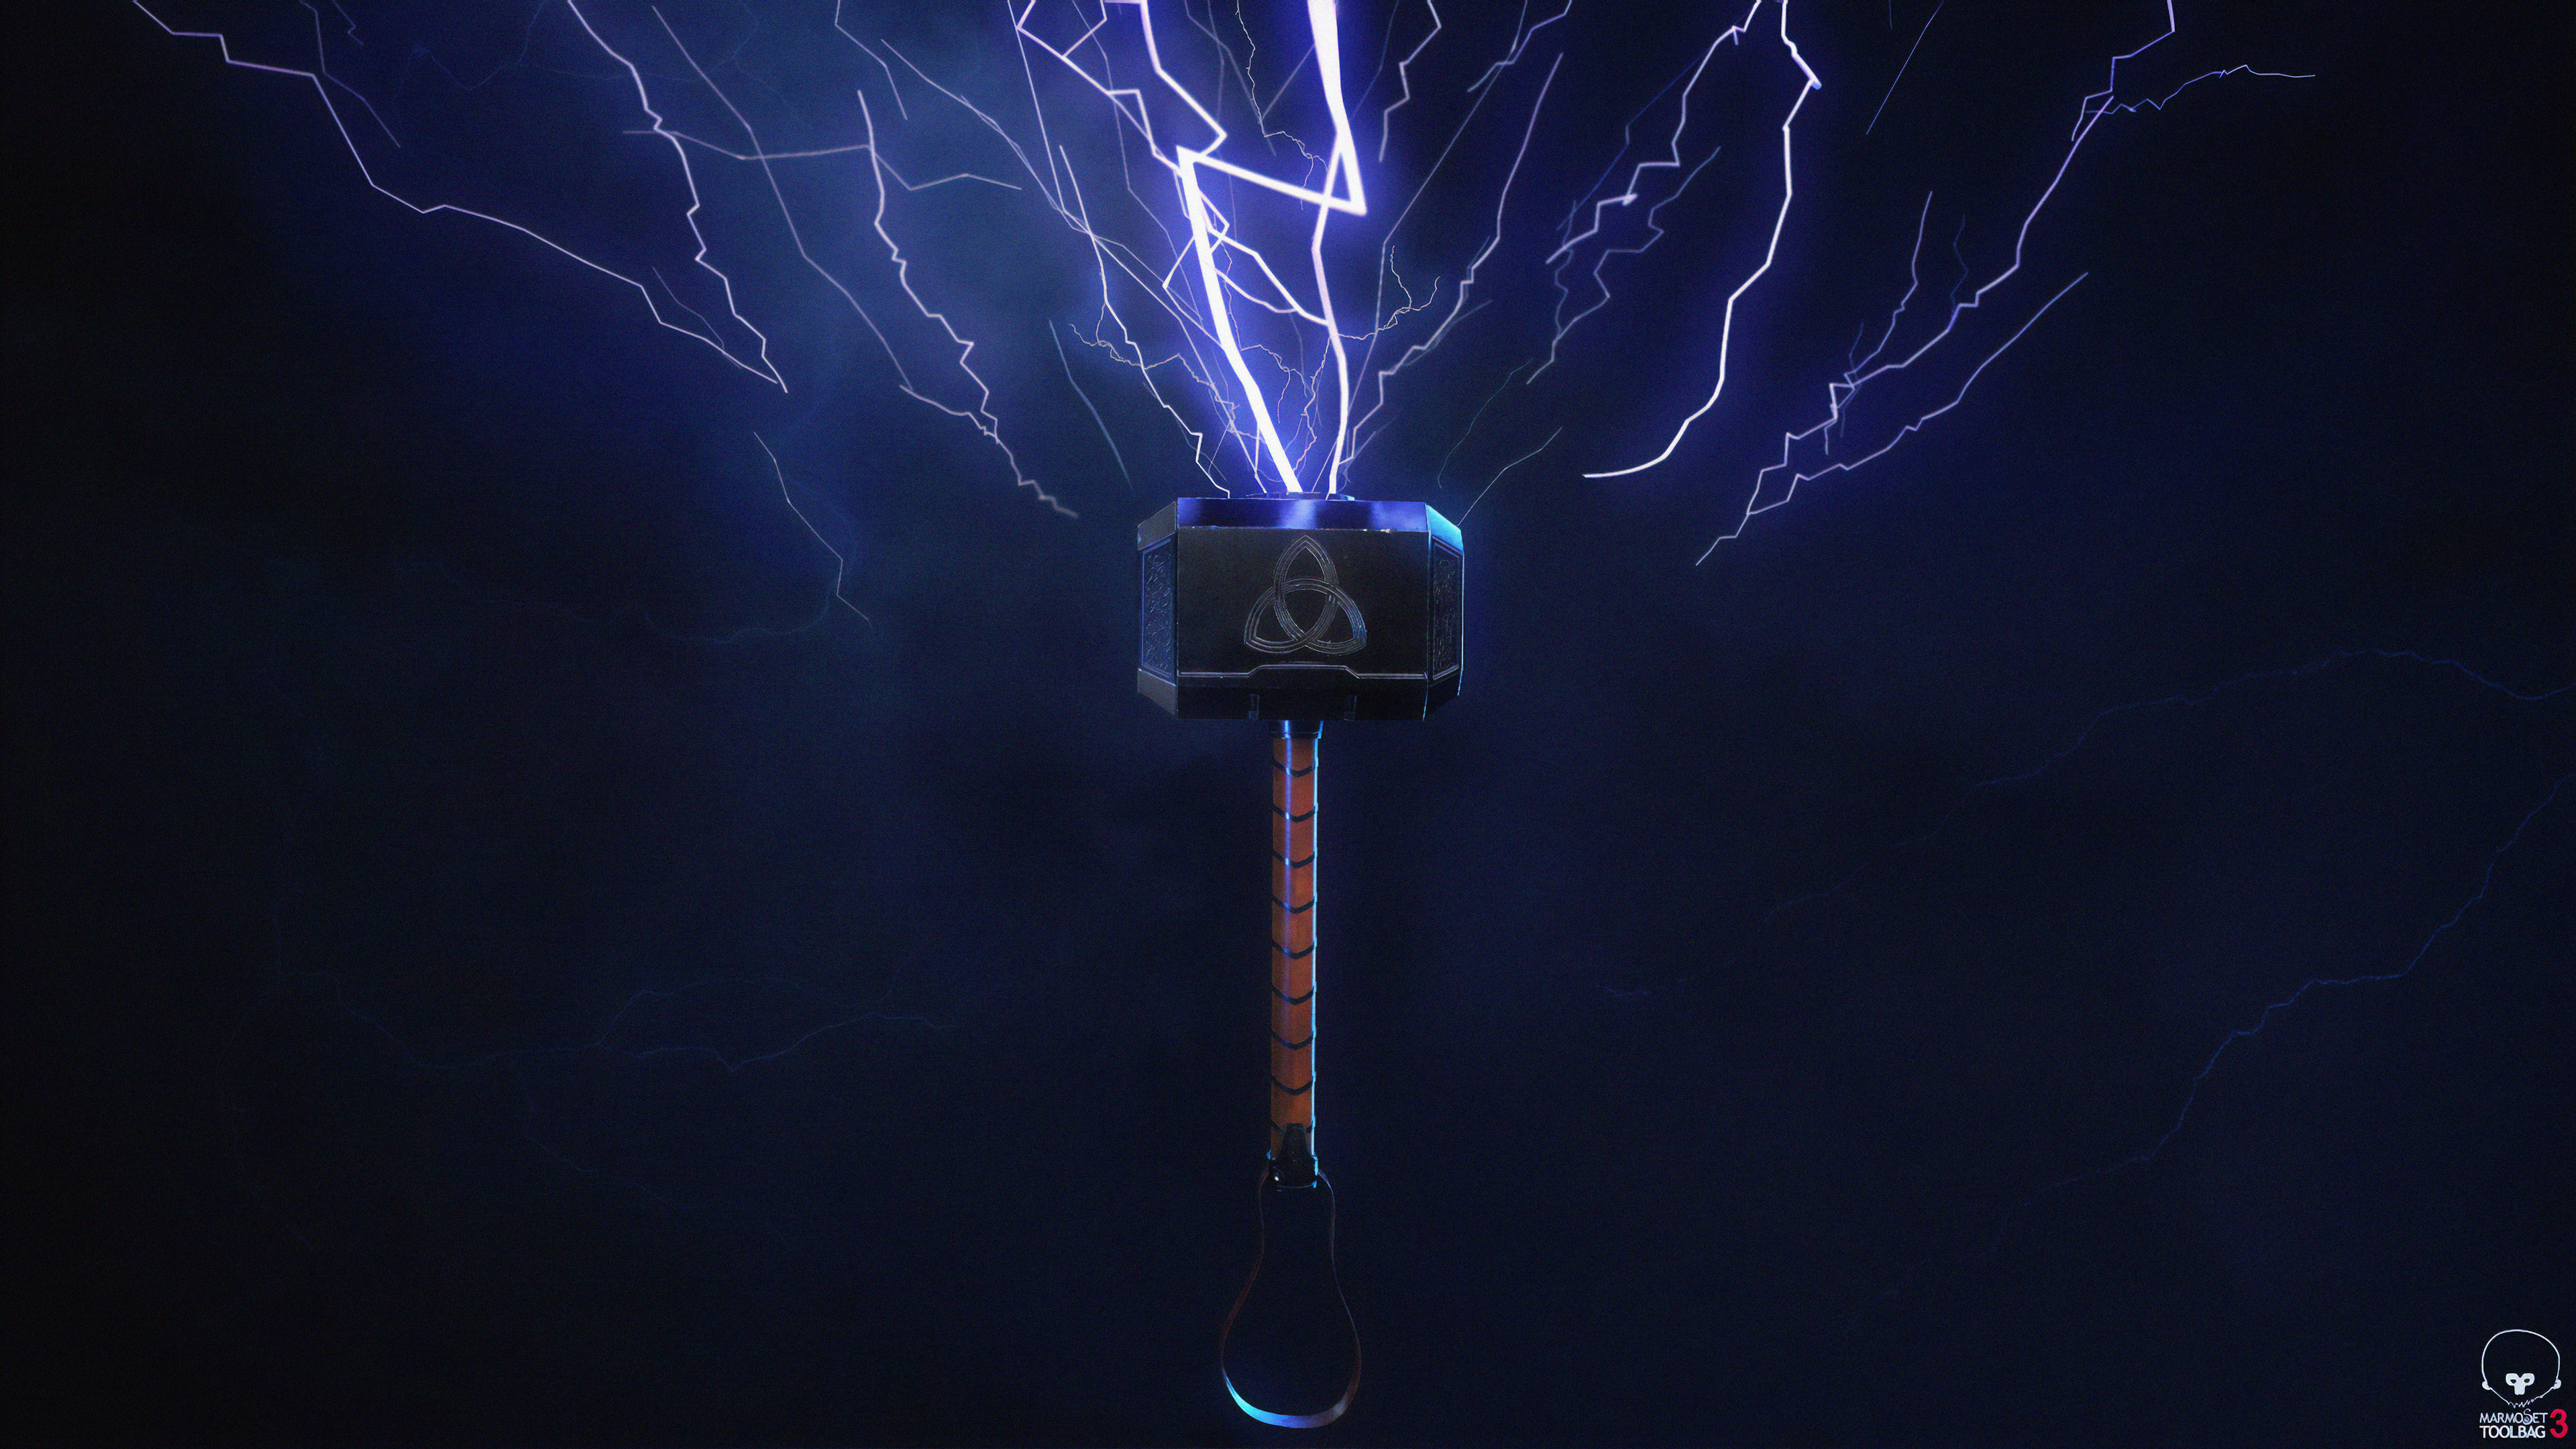 Thor Hammer 4k New Hd Superheroes 4k Wallpapers Images